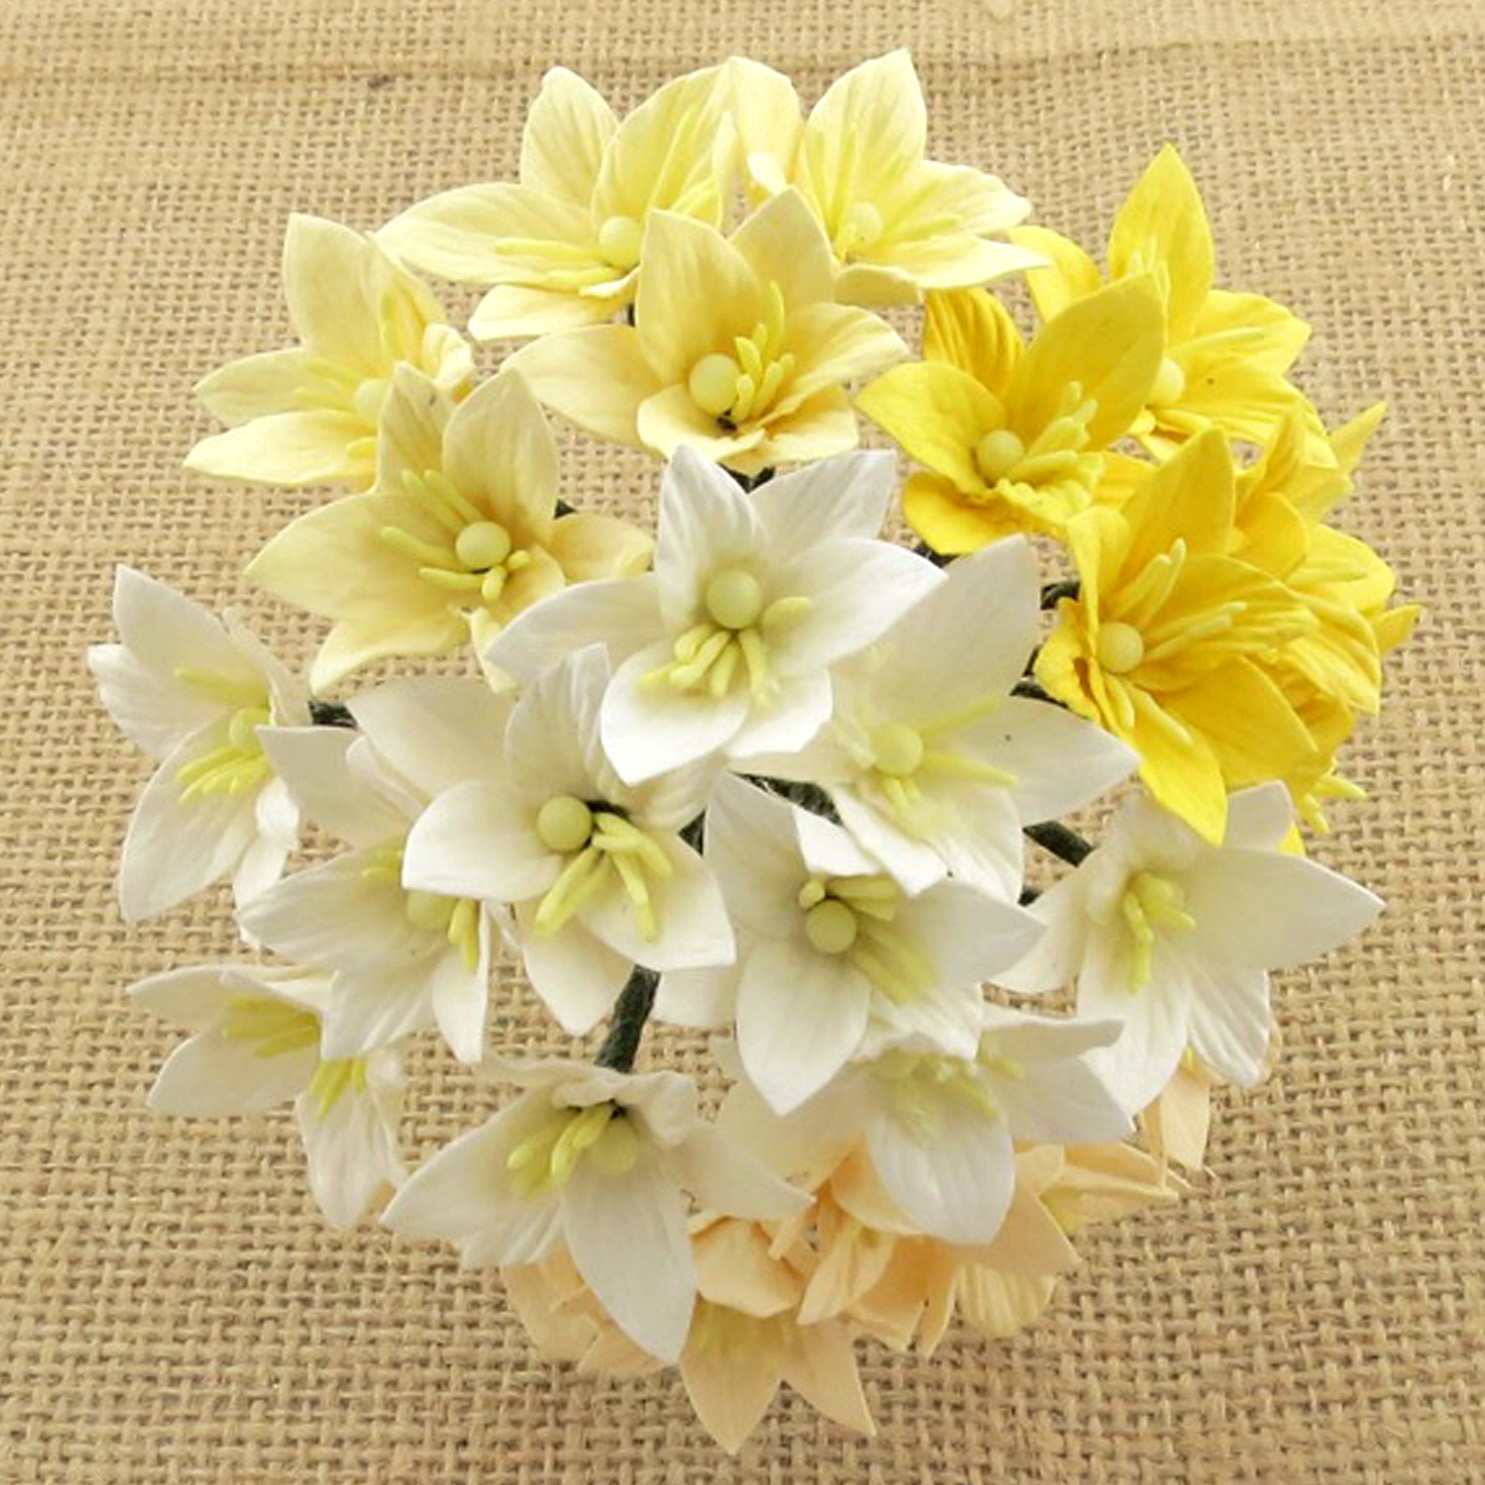 50 MIXED WHITE/CREAM MULBERRY PAPER LILY FLOWERS - 5 COLOR